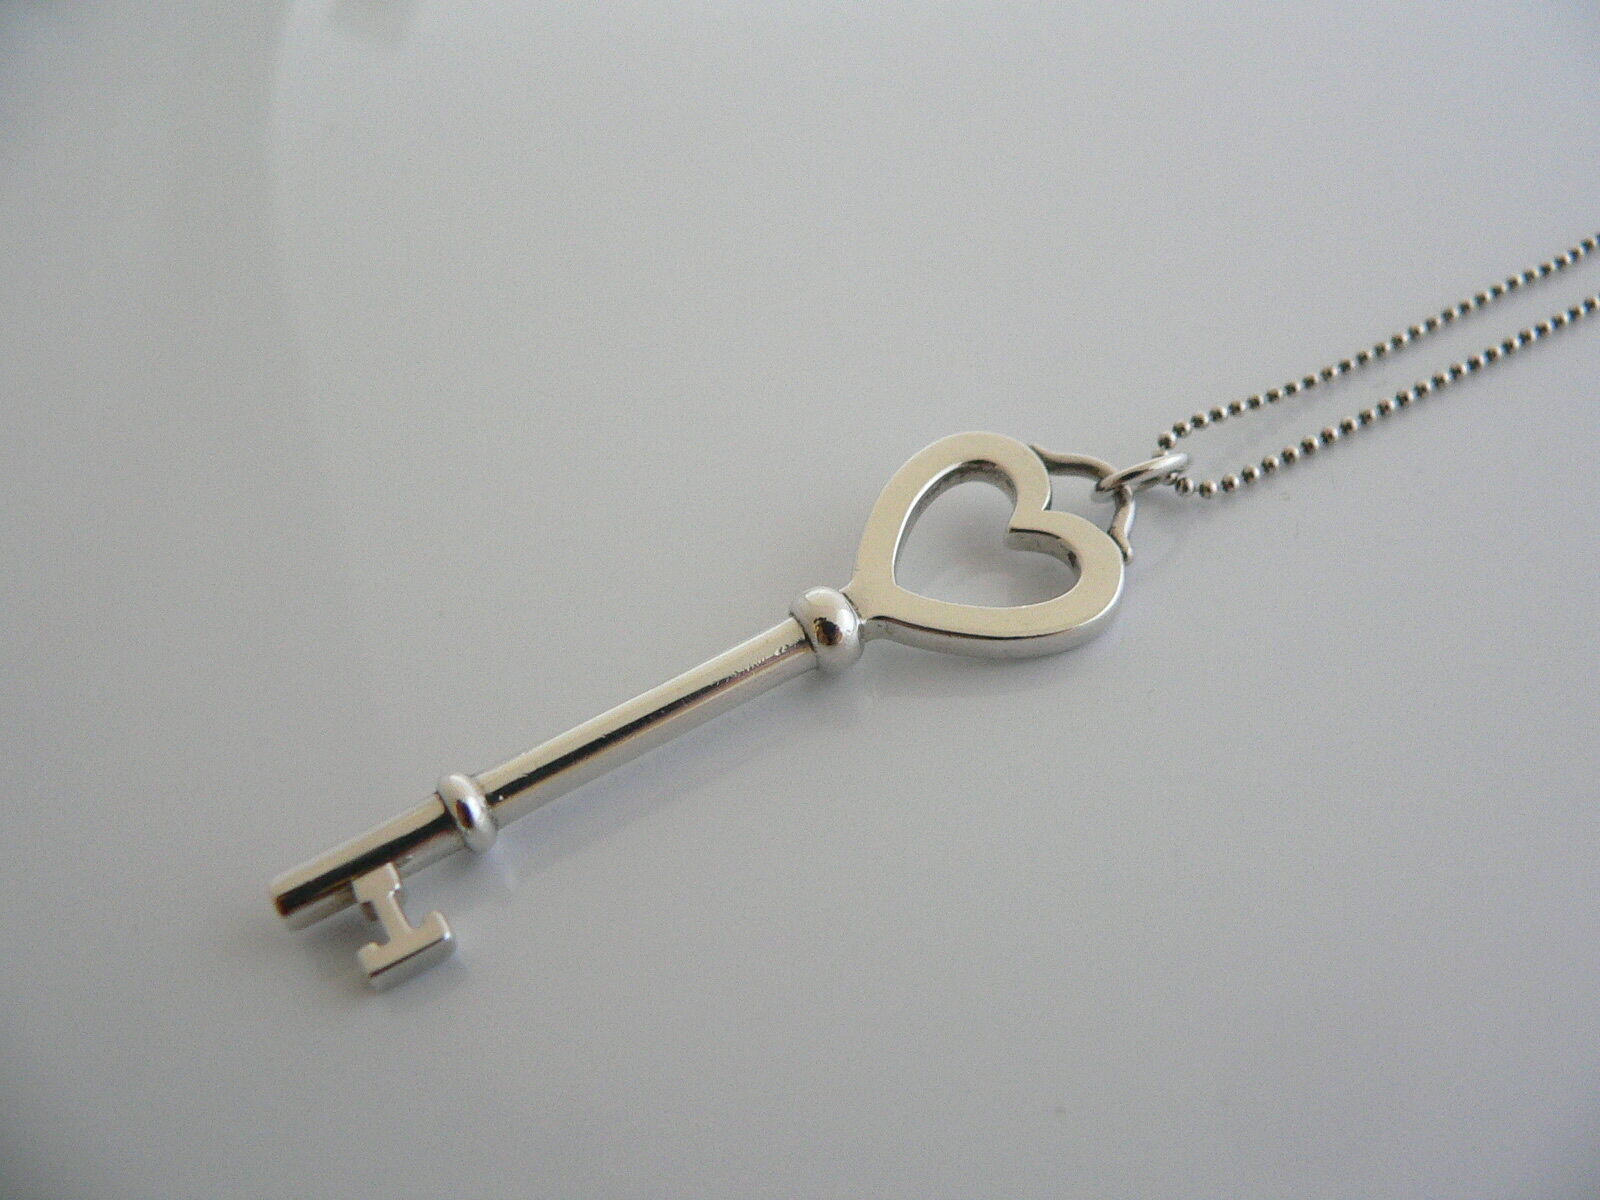 Tiffany Co Silver Large Heart Key Necklace Pendant Charm Bead Chain Gift Love